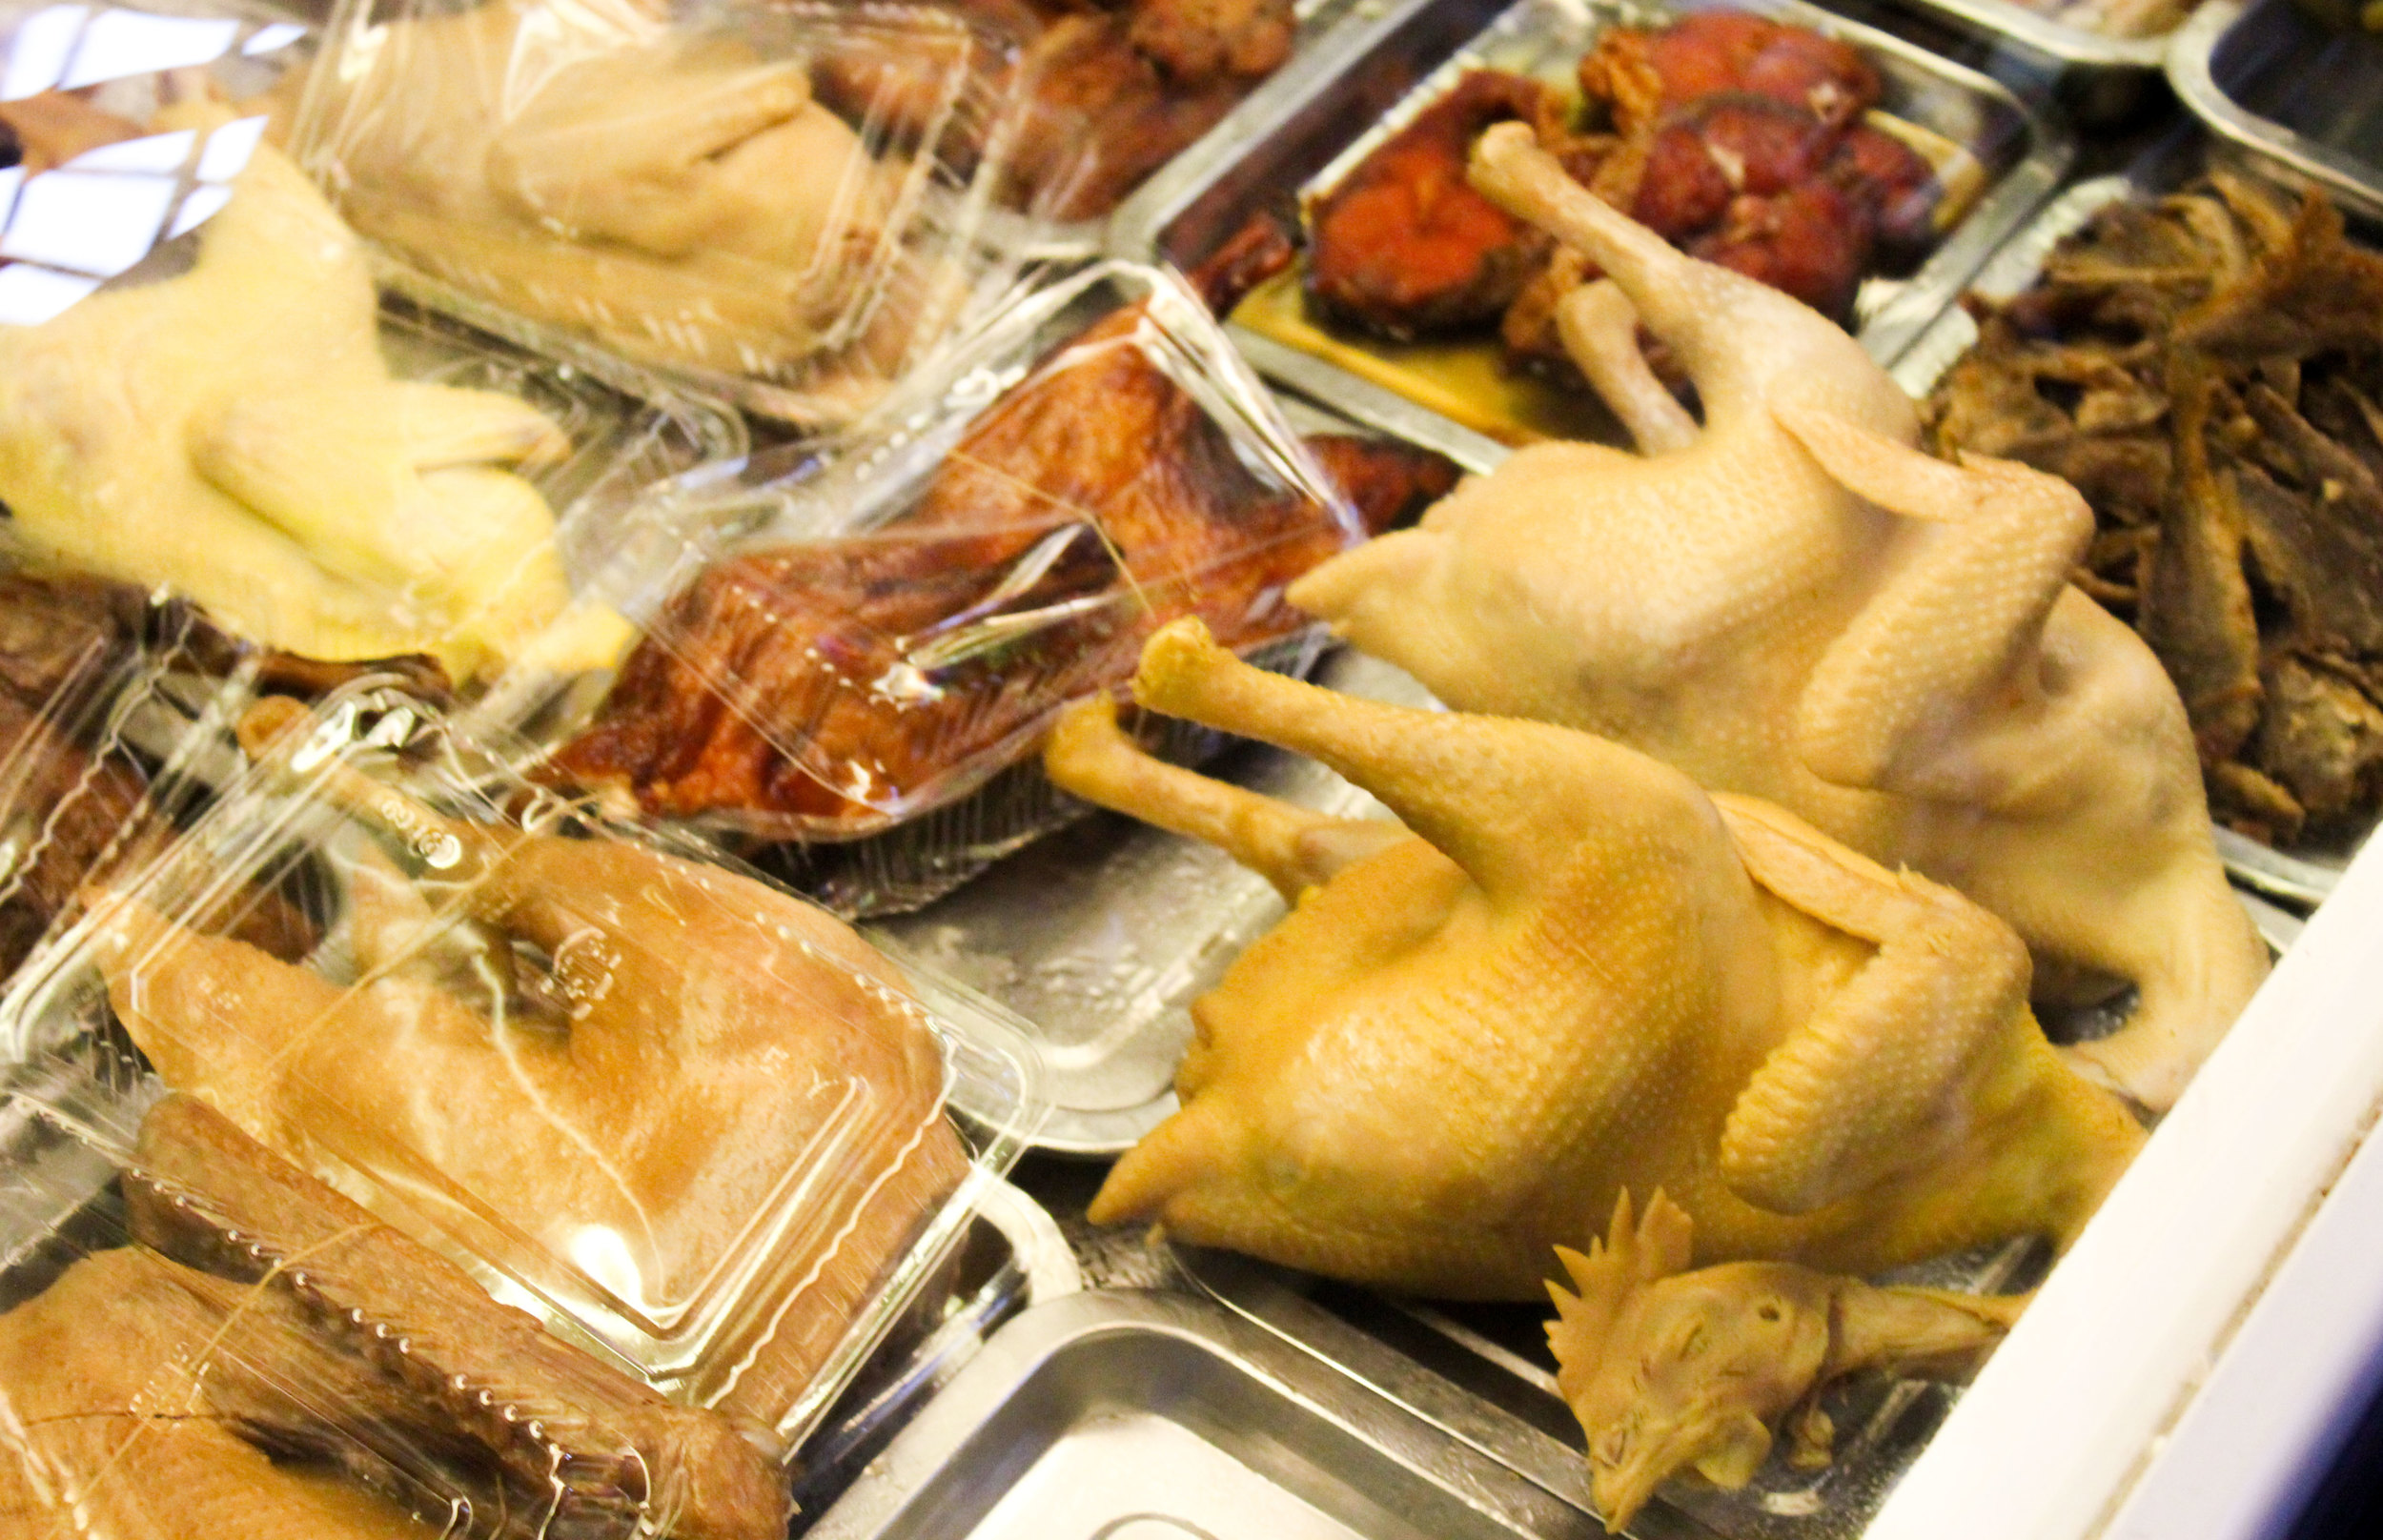 The Chinese believe removing bones and organs from poultry also removes the flavor, I believe this is hilarious